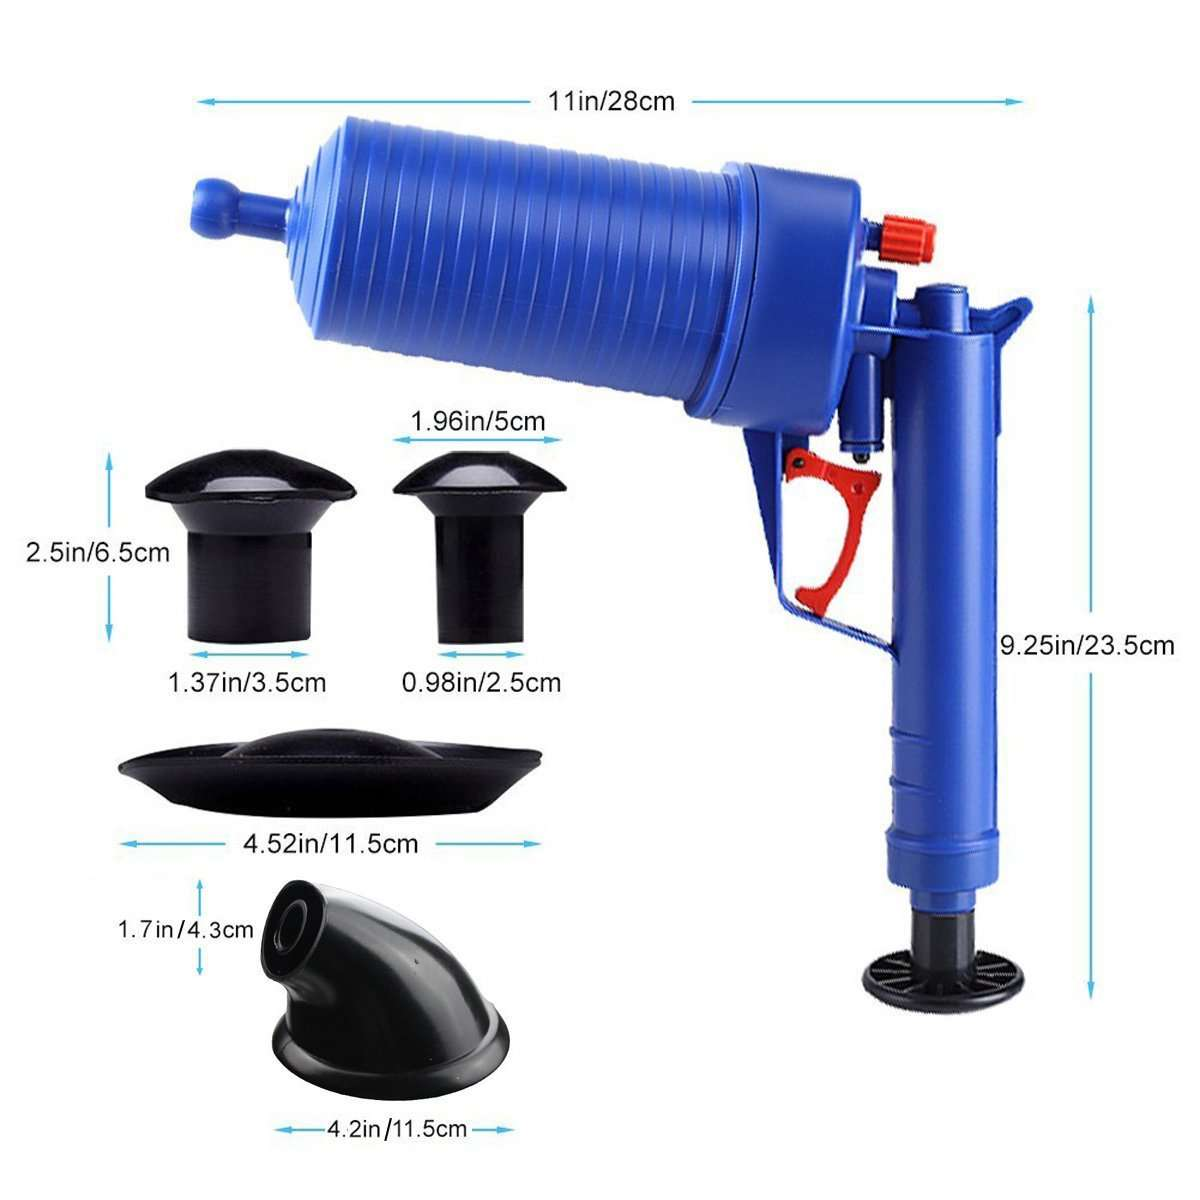 Air Power Cleaner Pump - Discounts You May Like